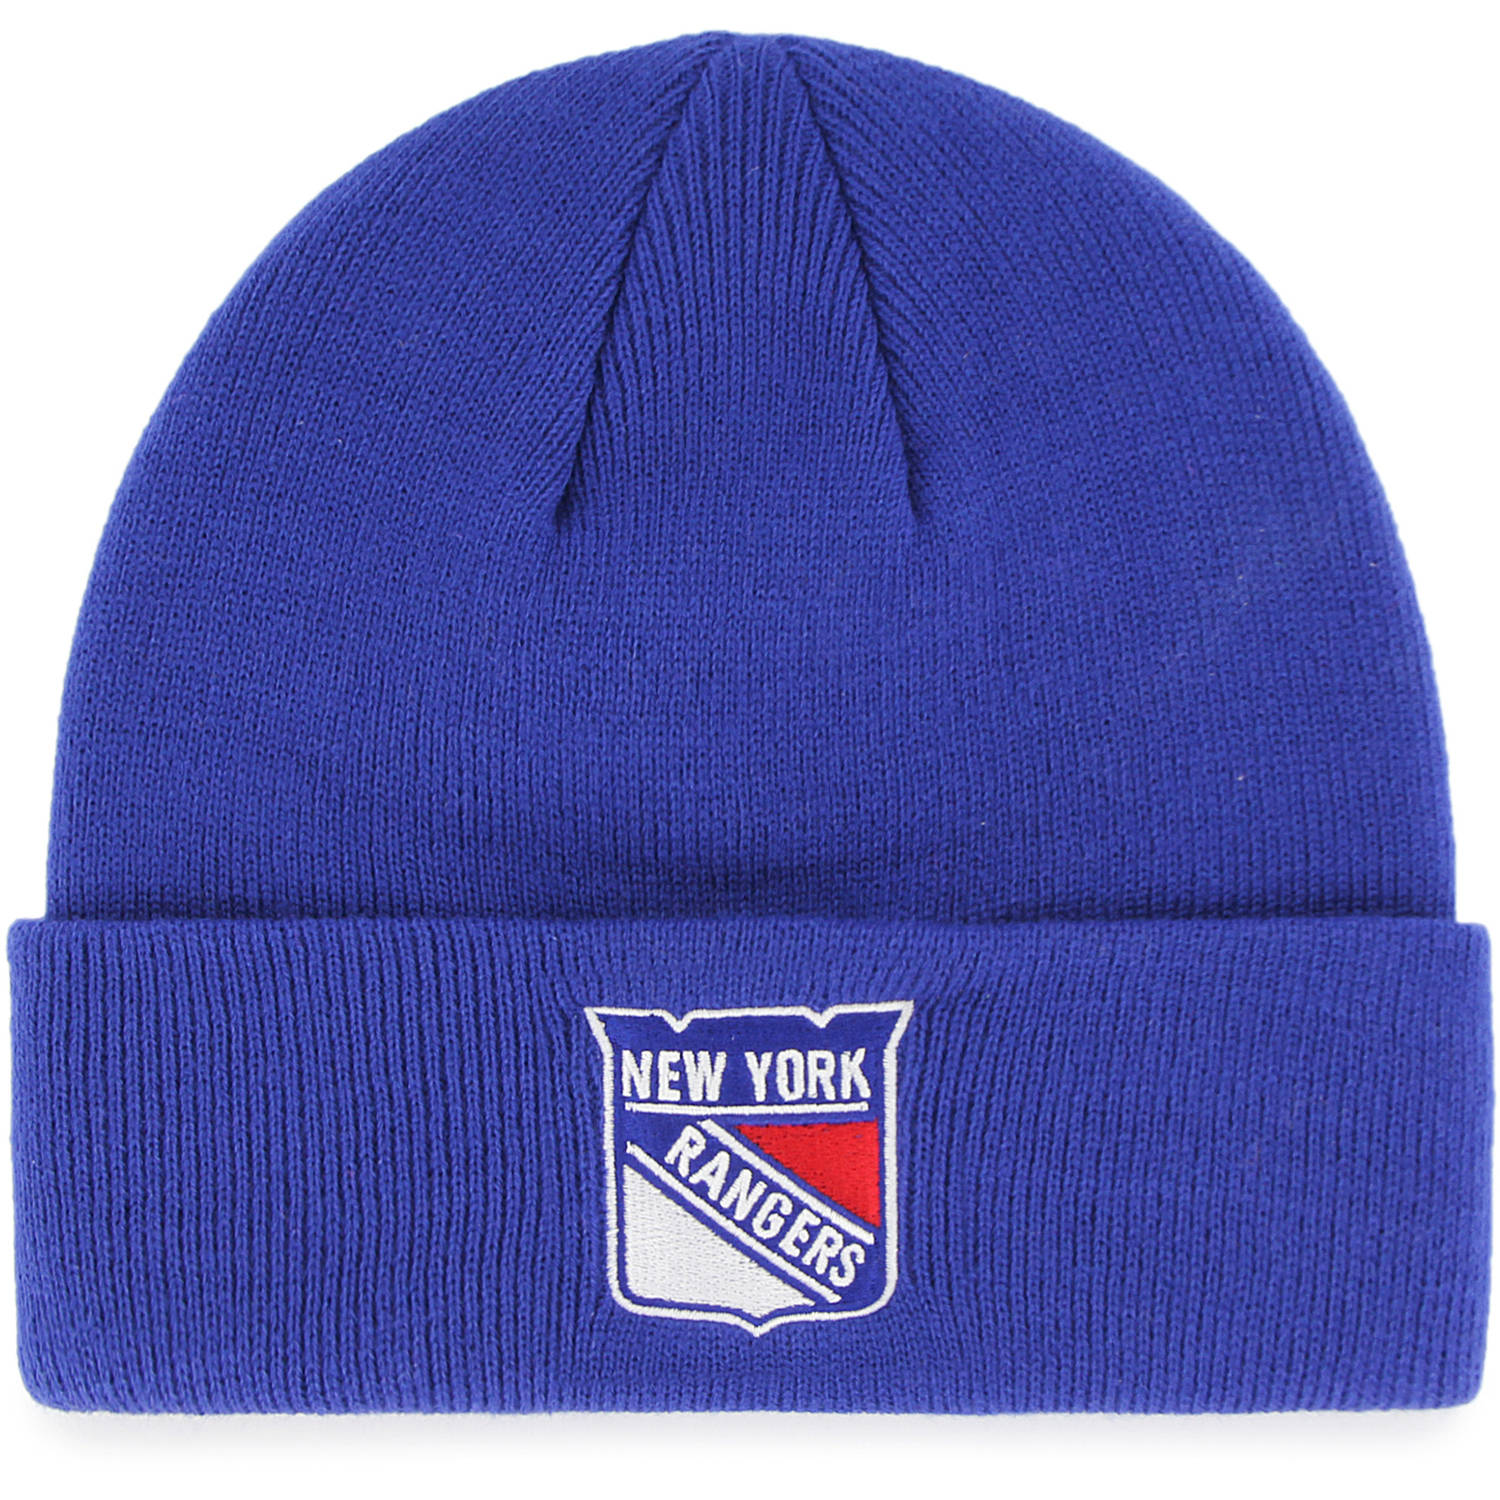 NHL New York Rangers Mass Cuff Knit Cap - Fan Favorite